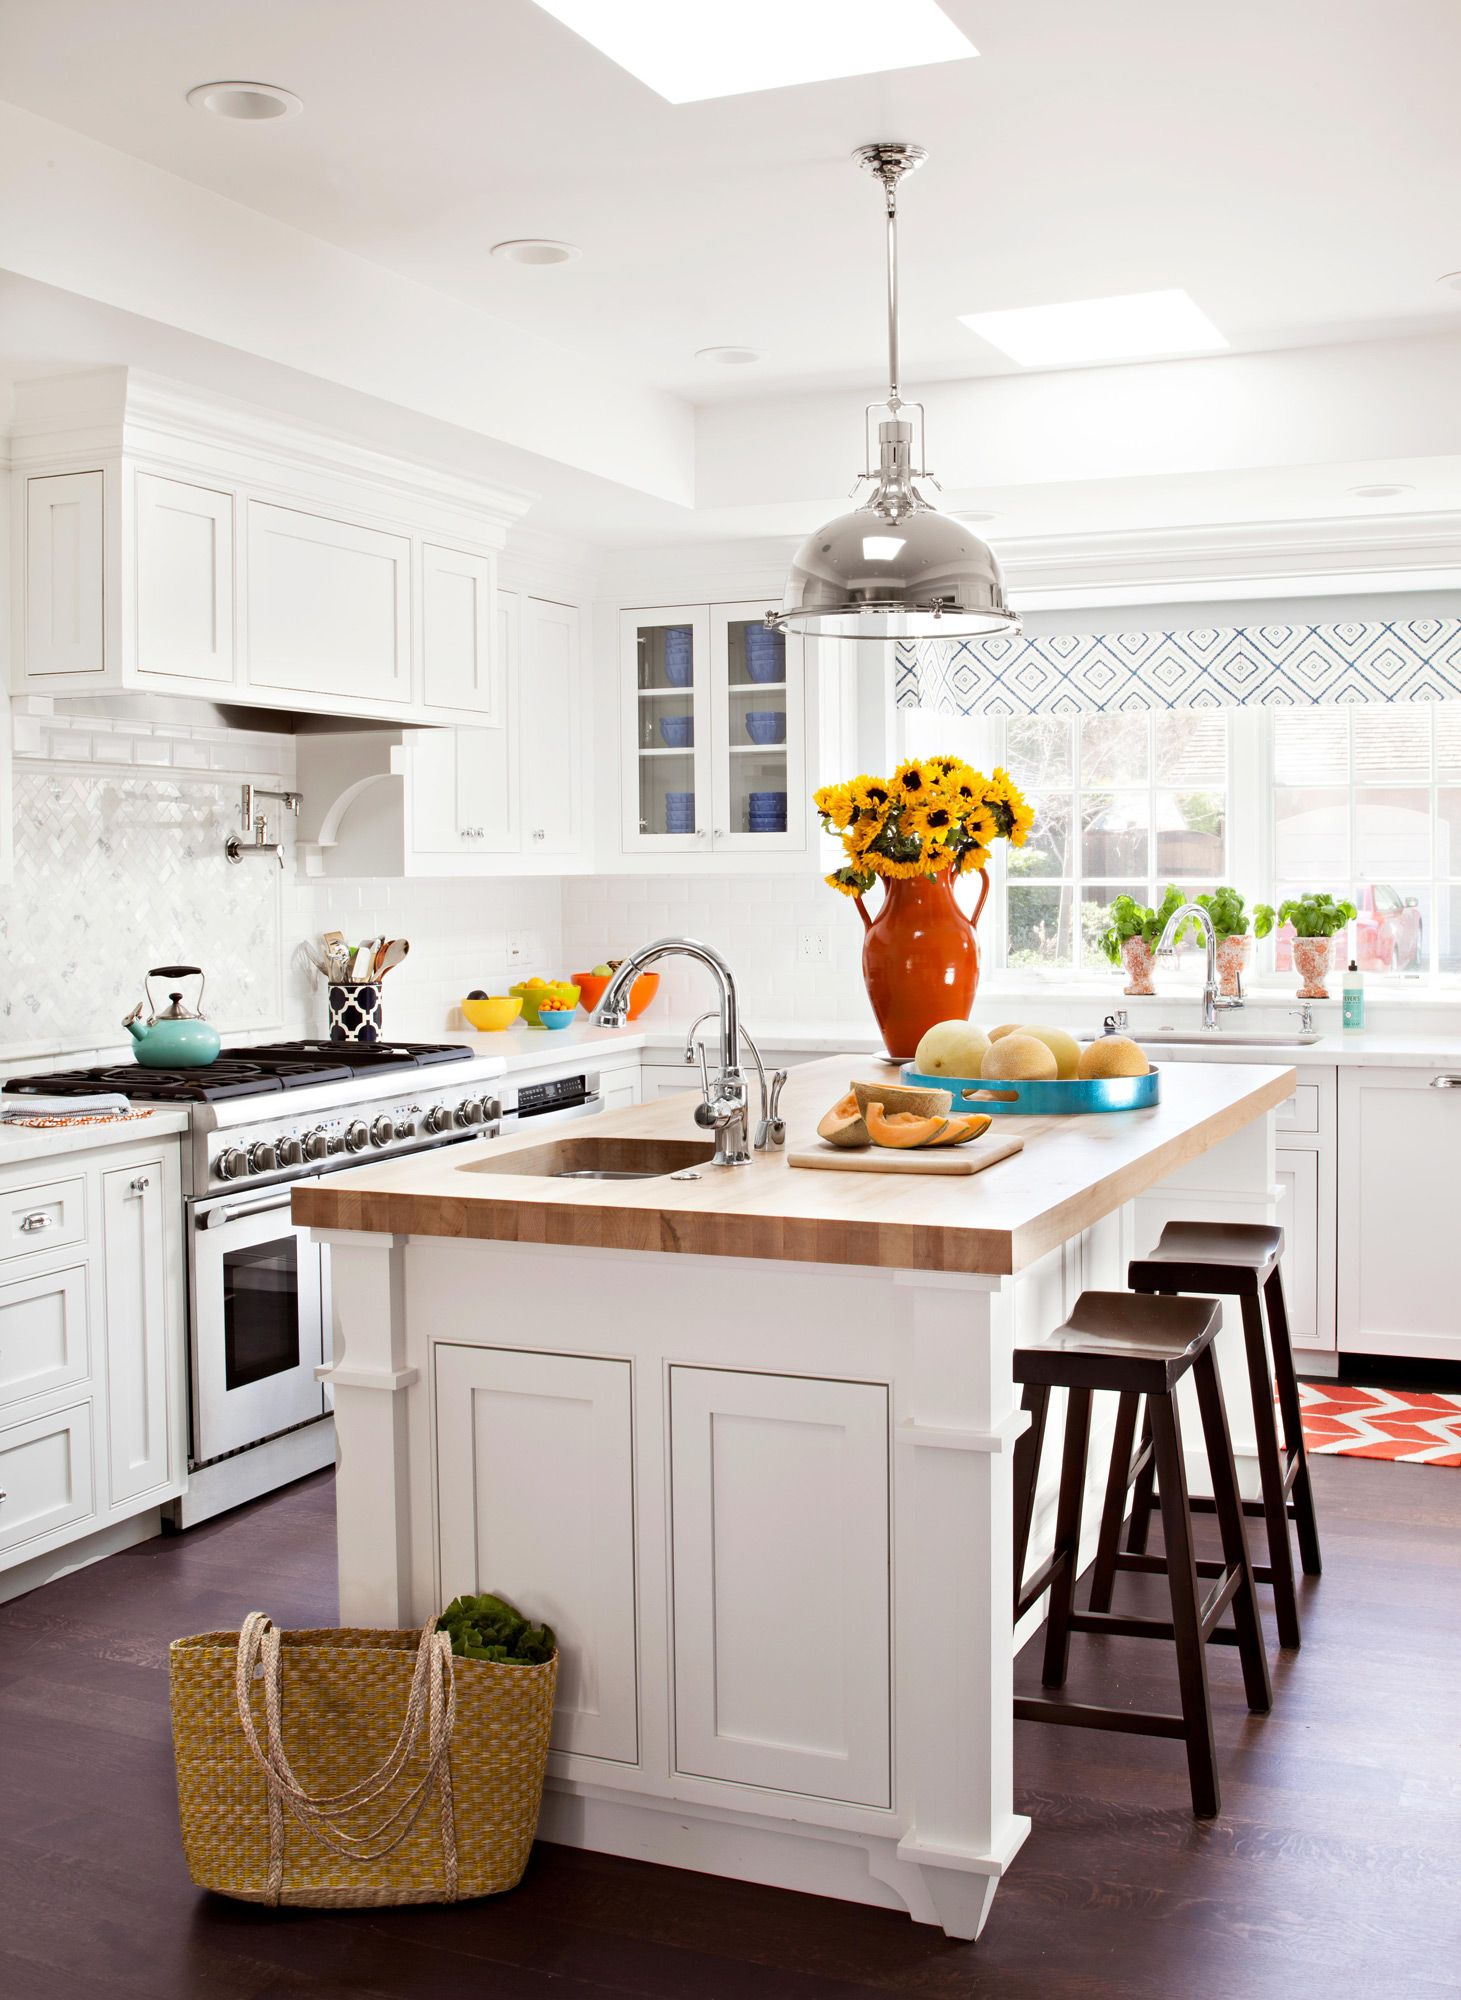 30 Dramatic Before And After Kitchen Makeovers You Won T Want To Miss In 2021 Kitchen Remodel Small Kitchen Room Design Kitchen Layout Kitchen trends 2016 to avoid